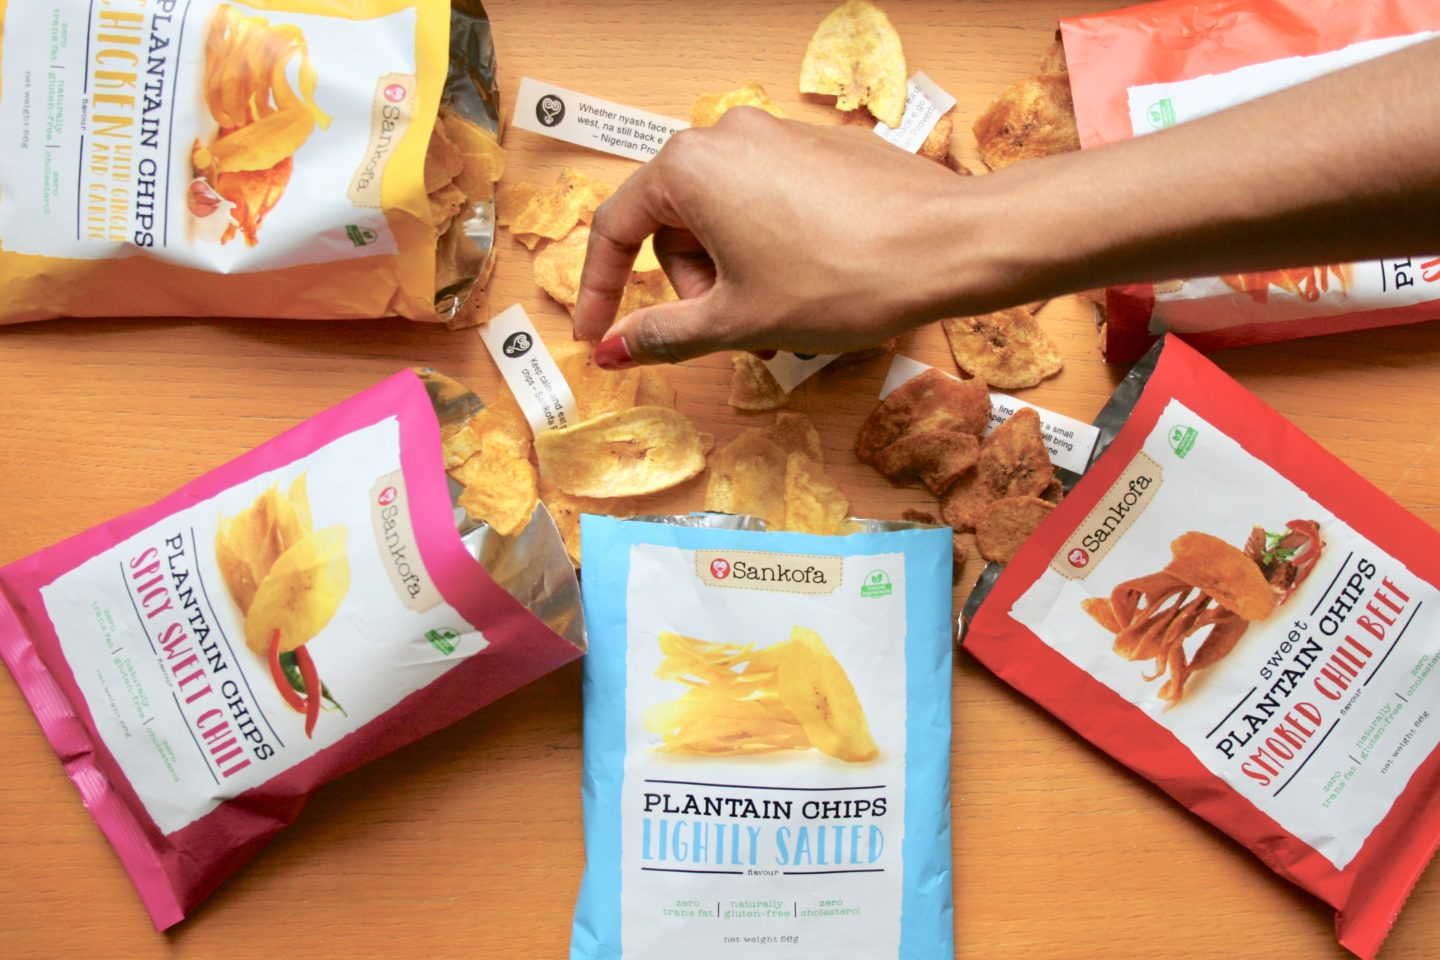 MUNCHING MADNESS! SANKOFA PLANTAIN CHIPS!